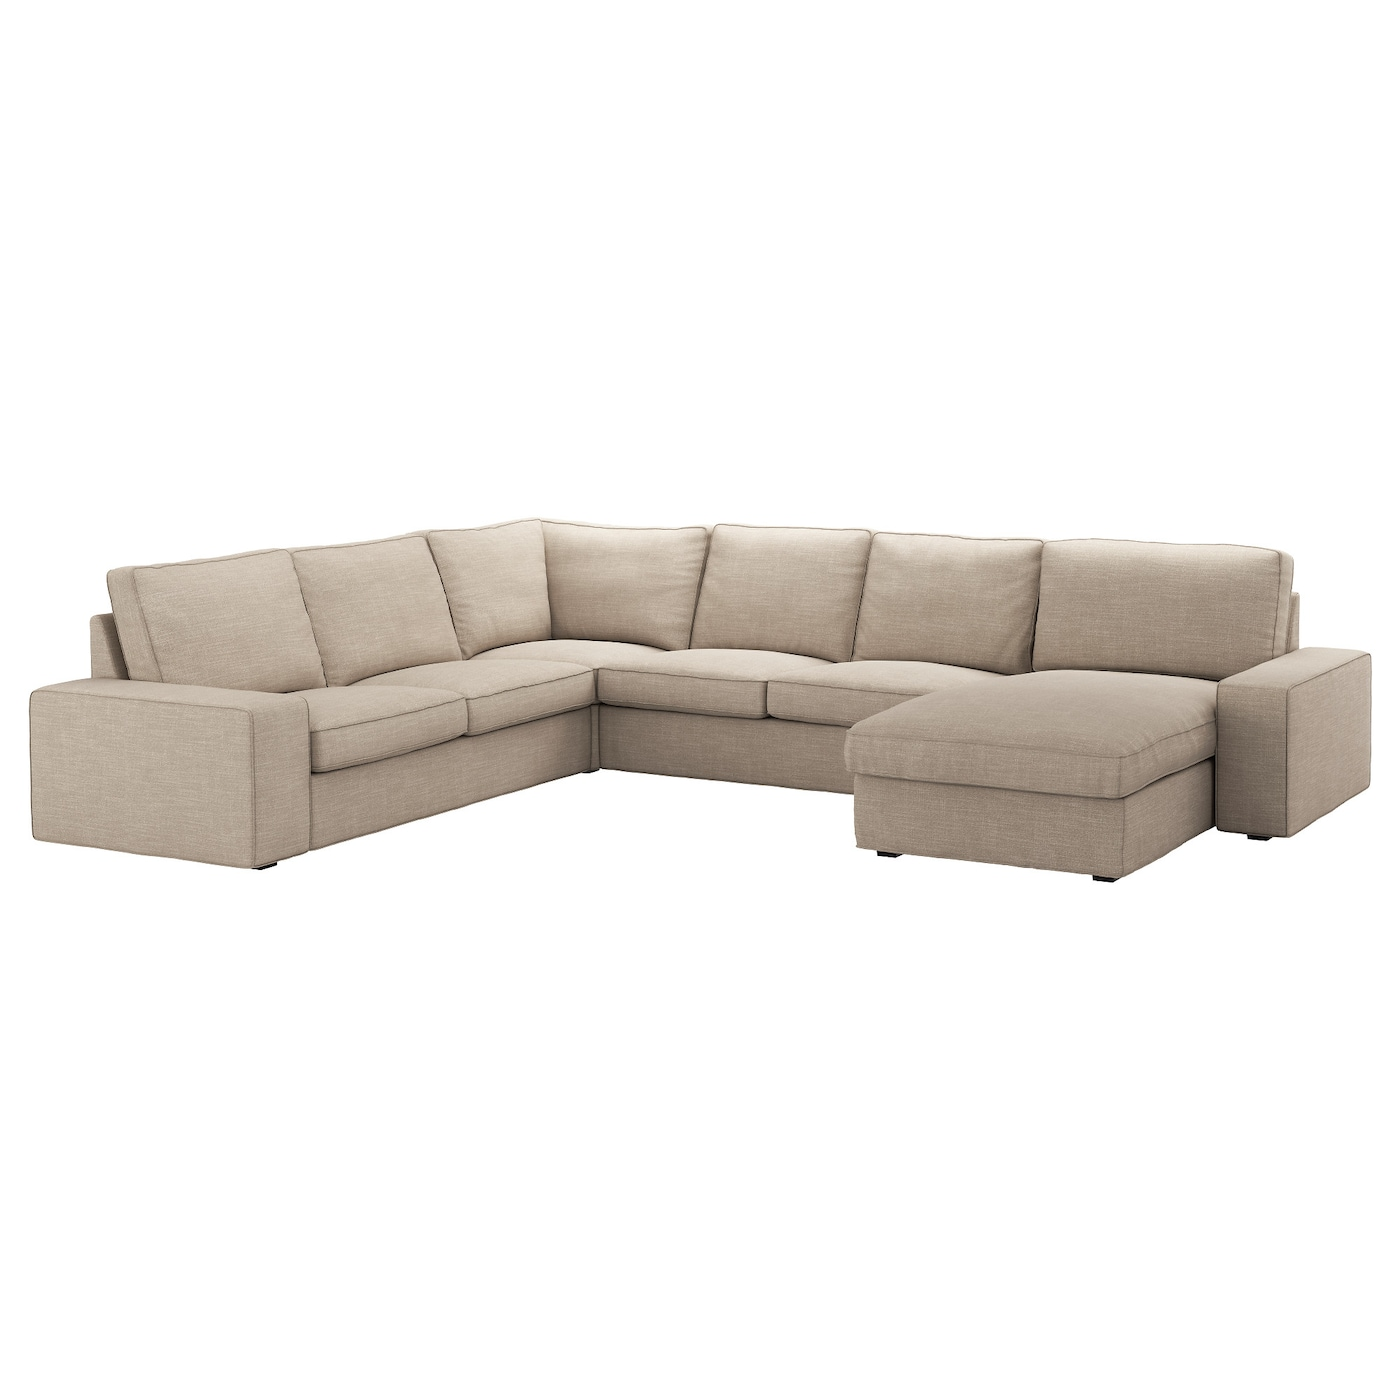 Ecksofa beige  Free try out of Cor Jalis 02 Sofa from Cor in 3D, VR and AR